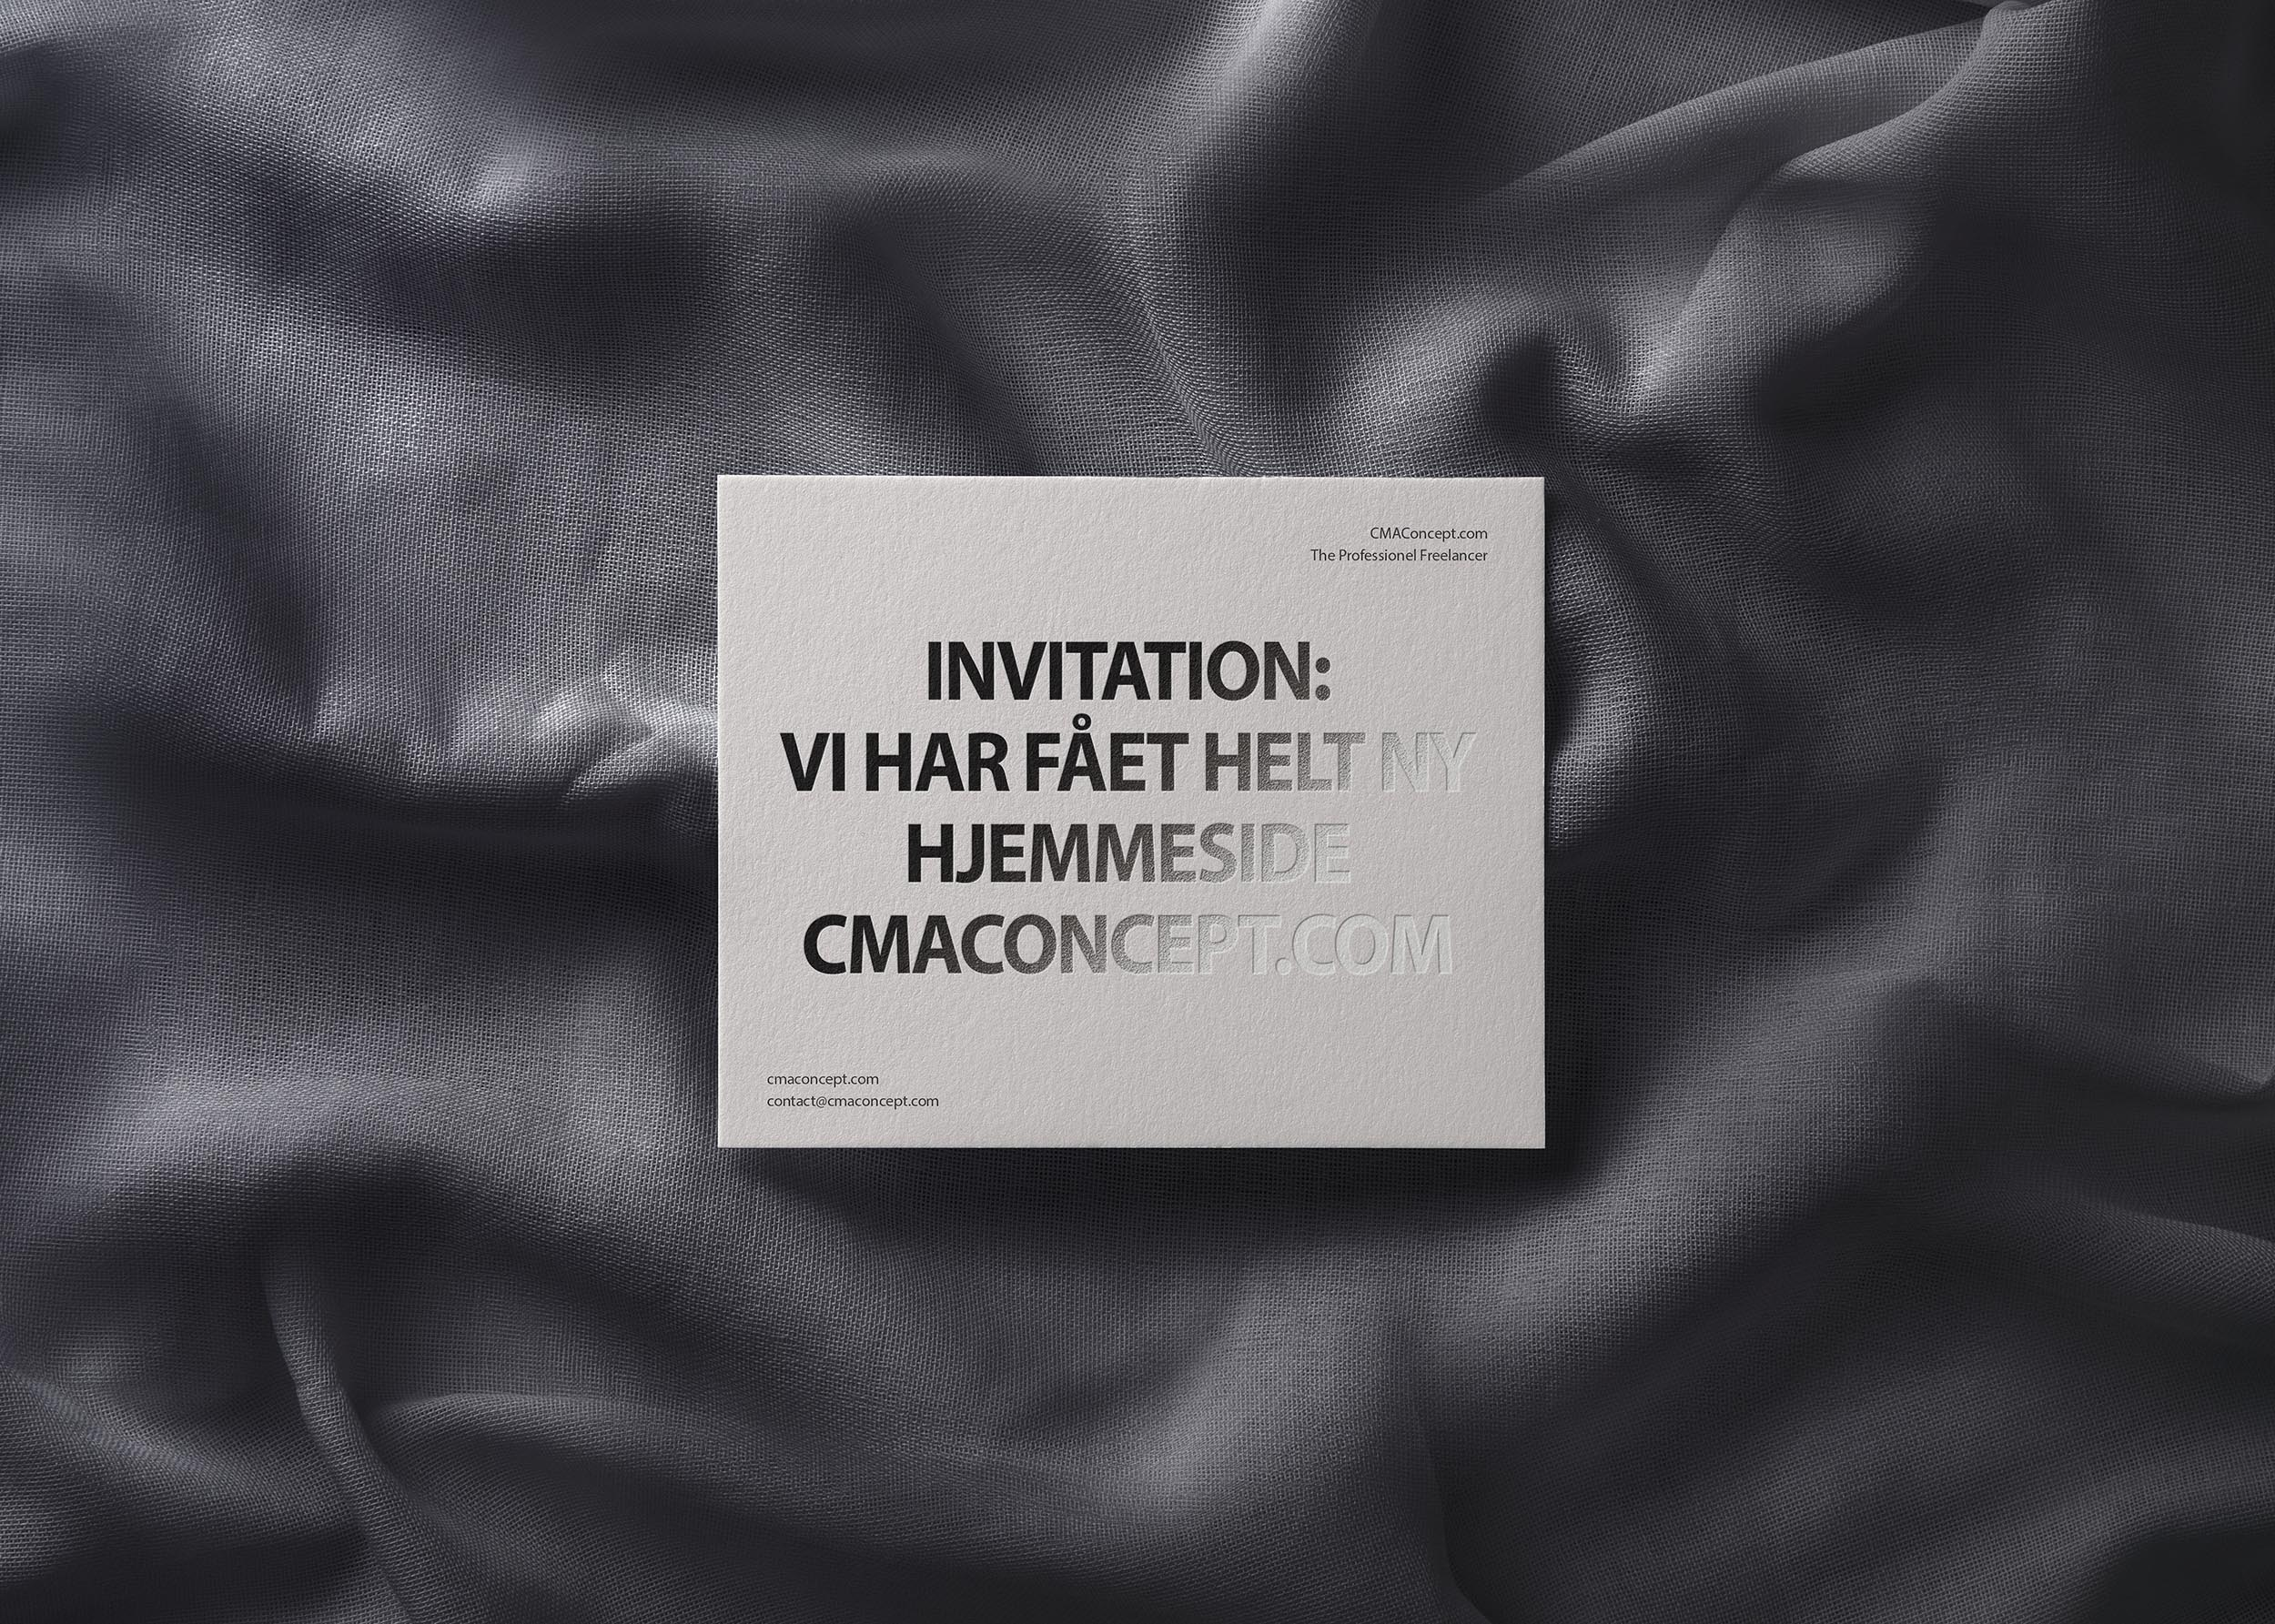 2500px - CMAConcept.com ny hjemmeside - Invitation-Card-Mockup-Vol-10.jpg